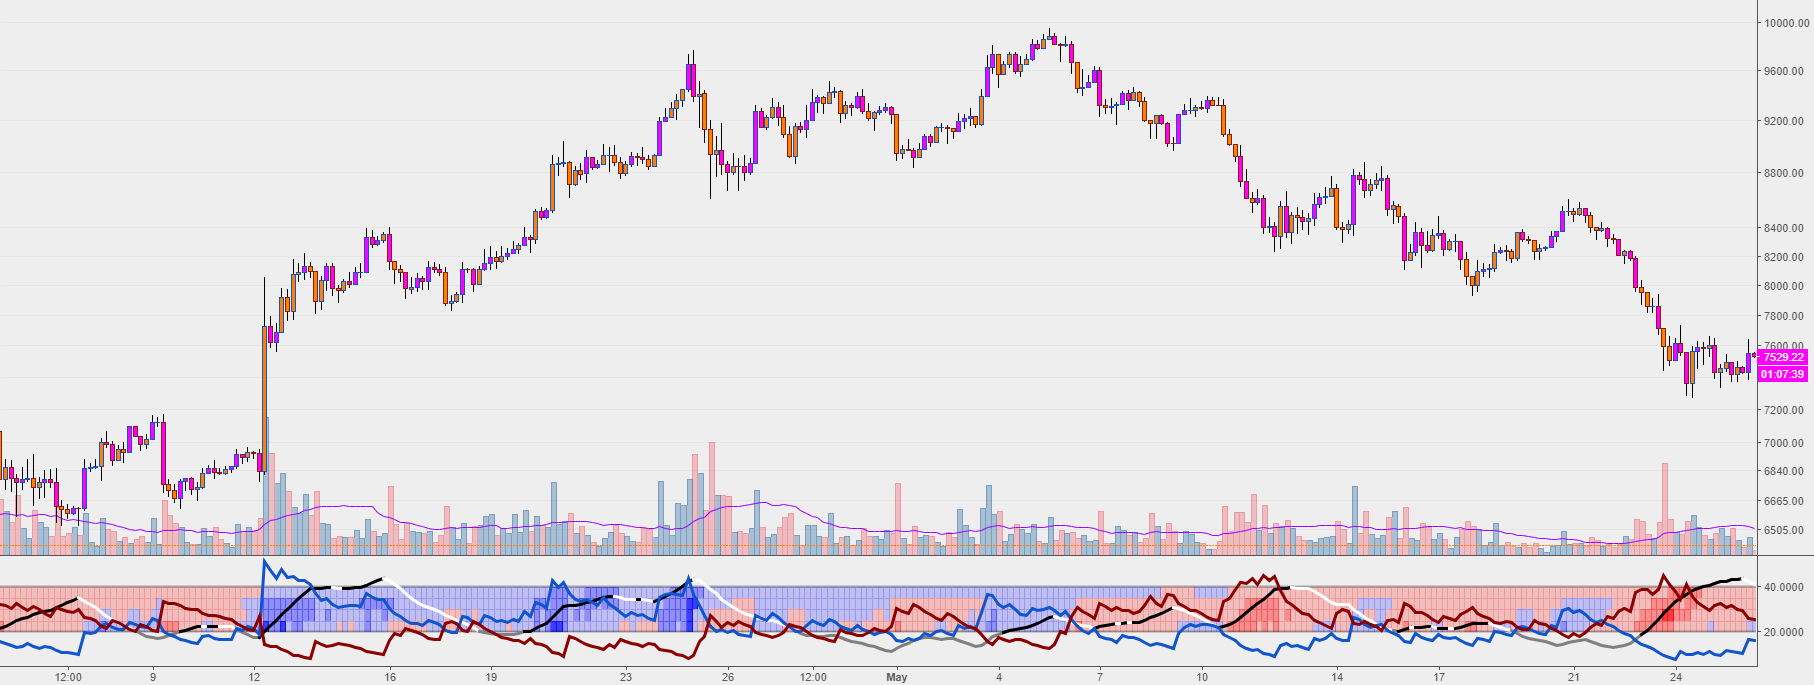 Smart ADX trading strategy using support and resistance